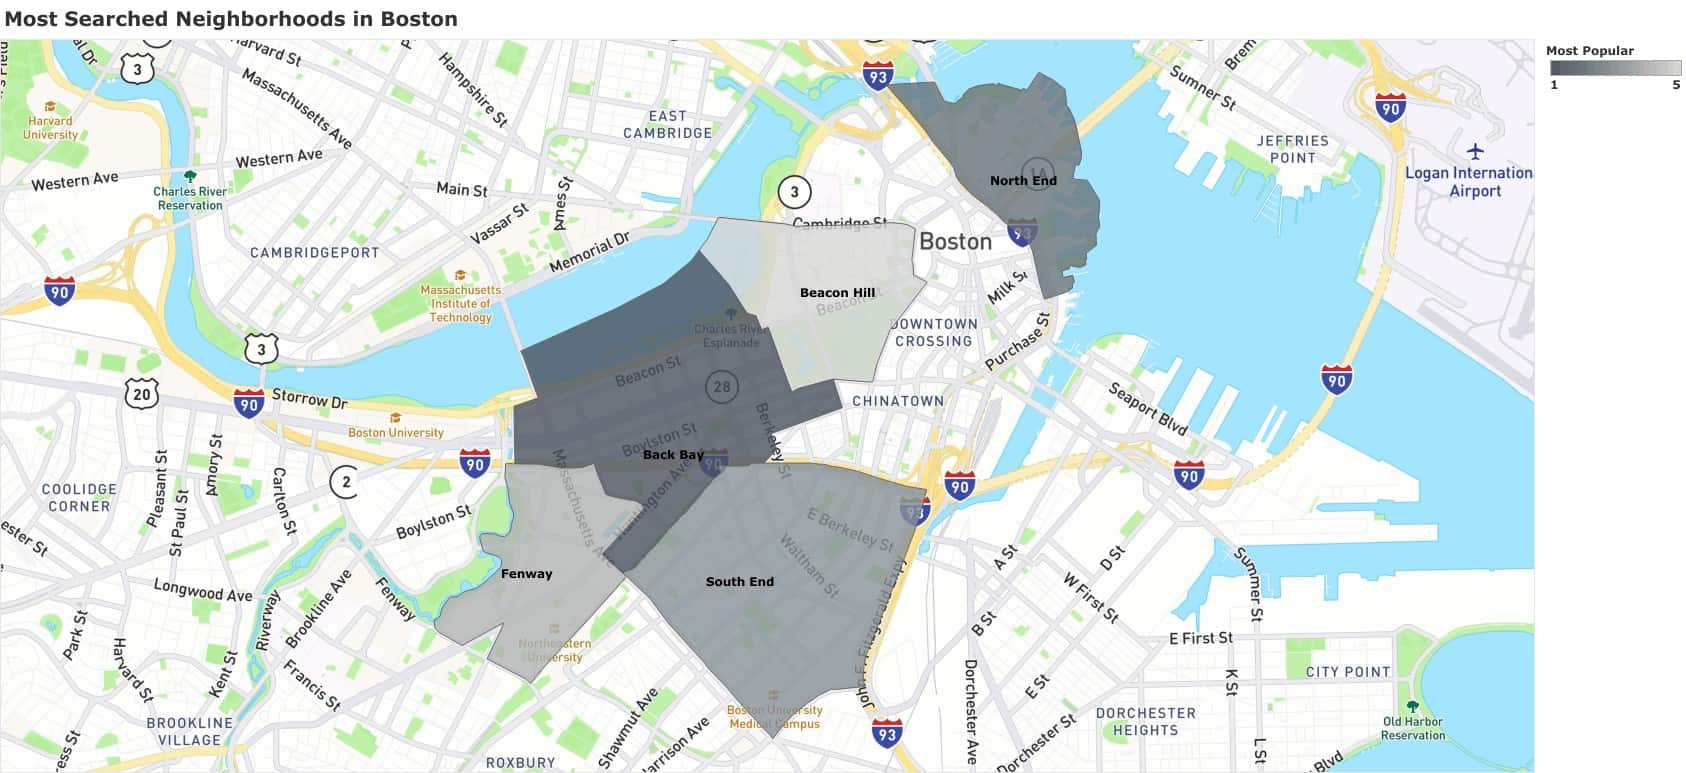 boston most searched neighborhoods